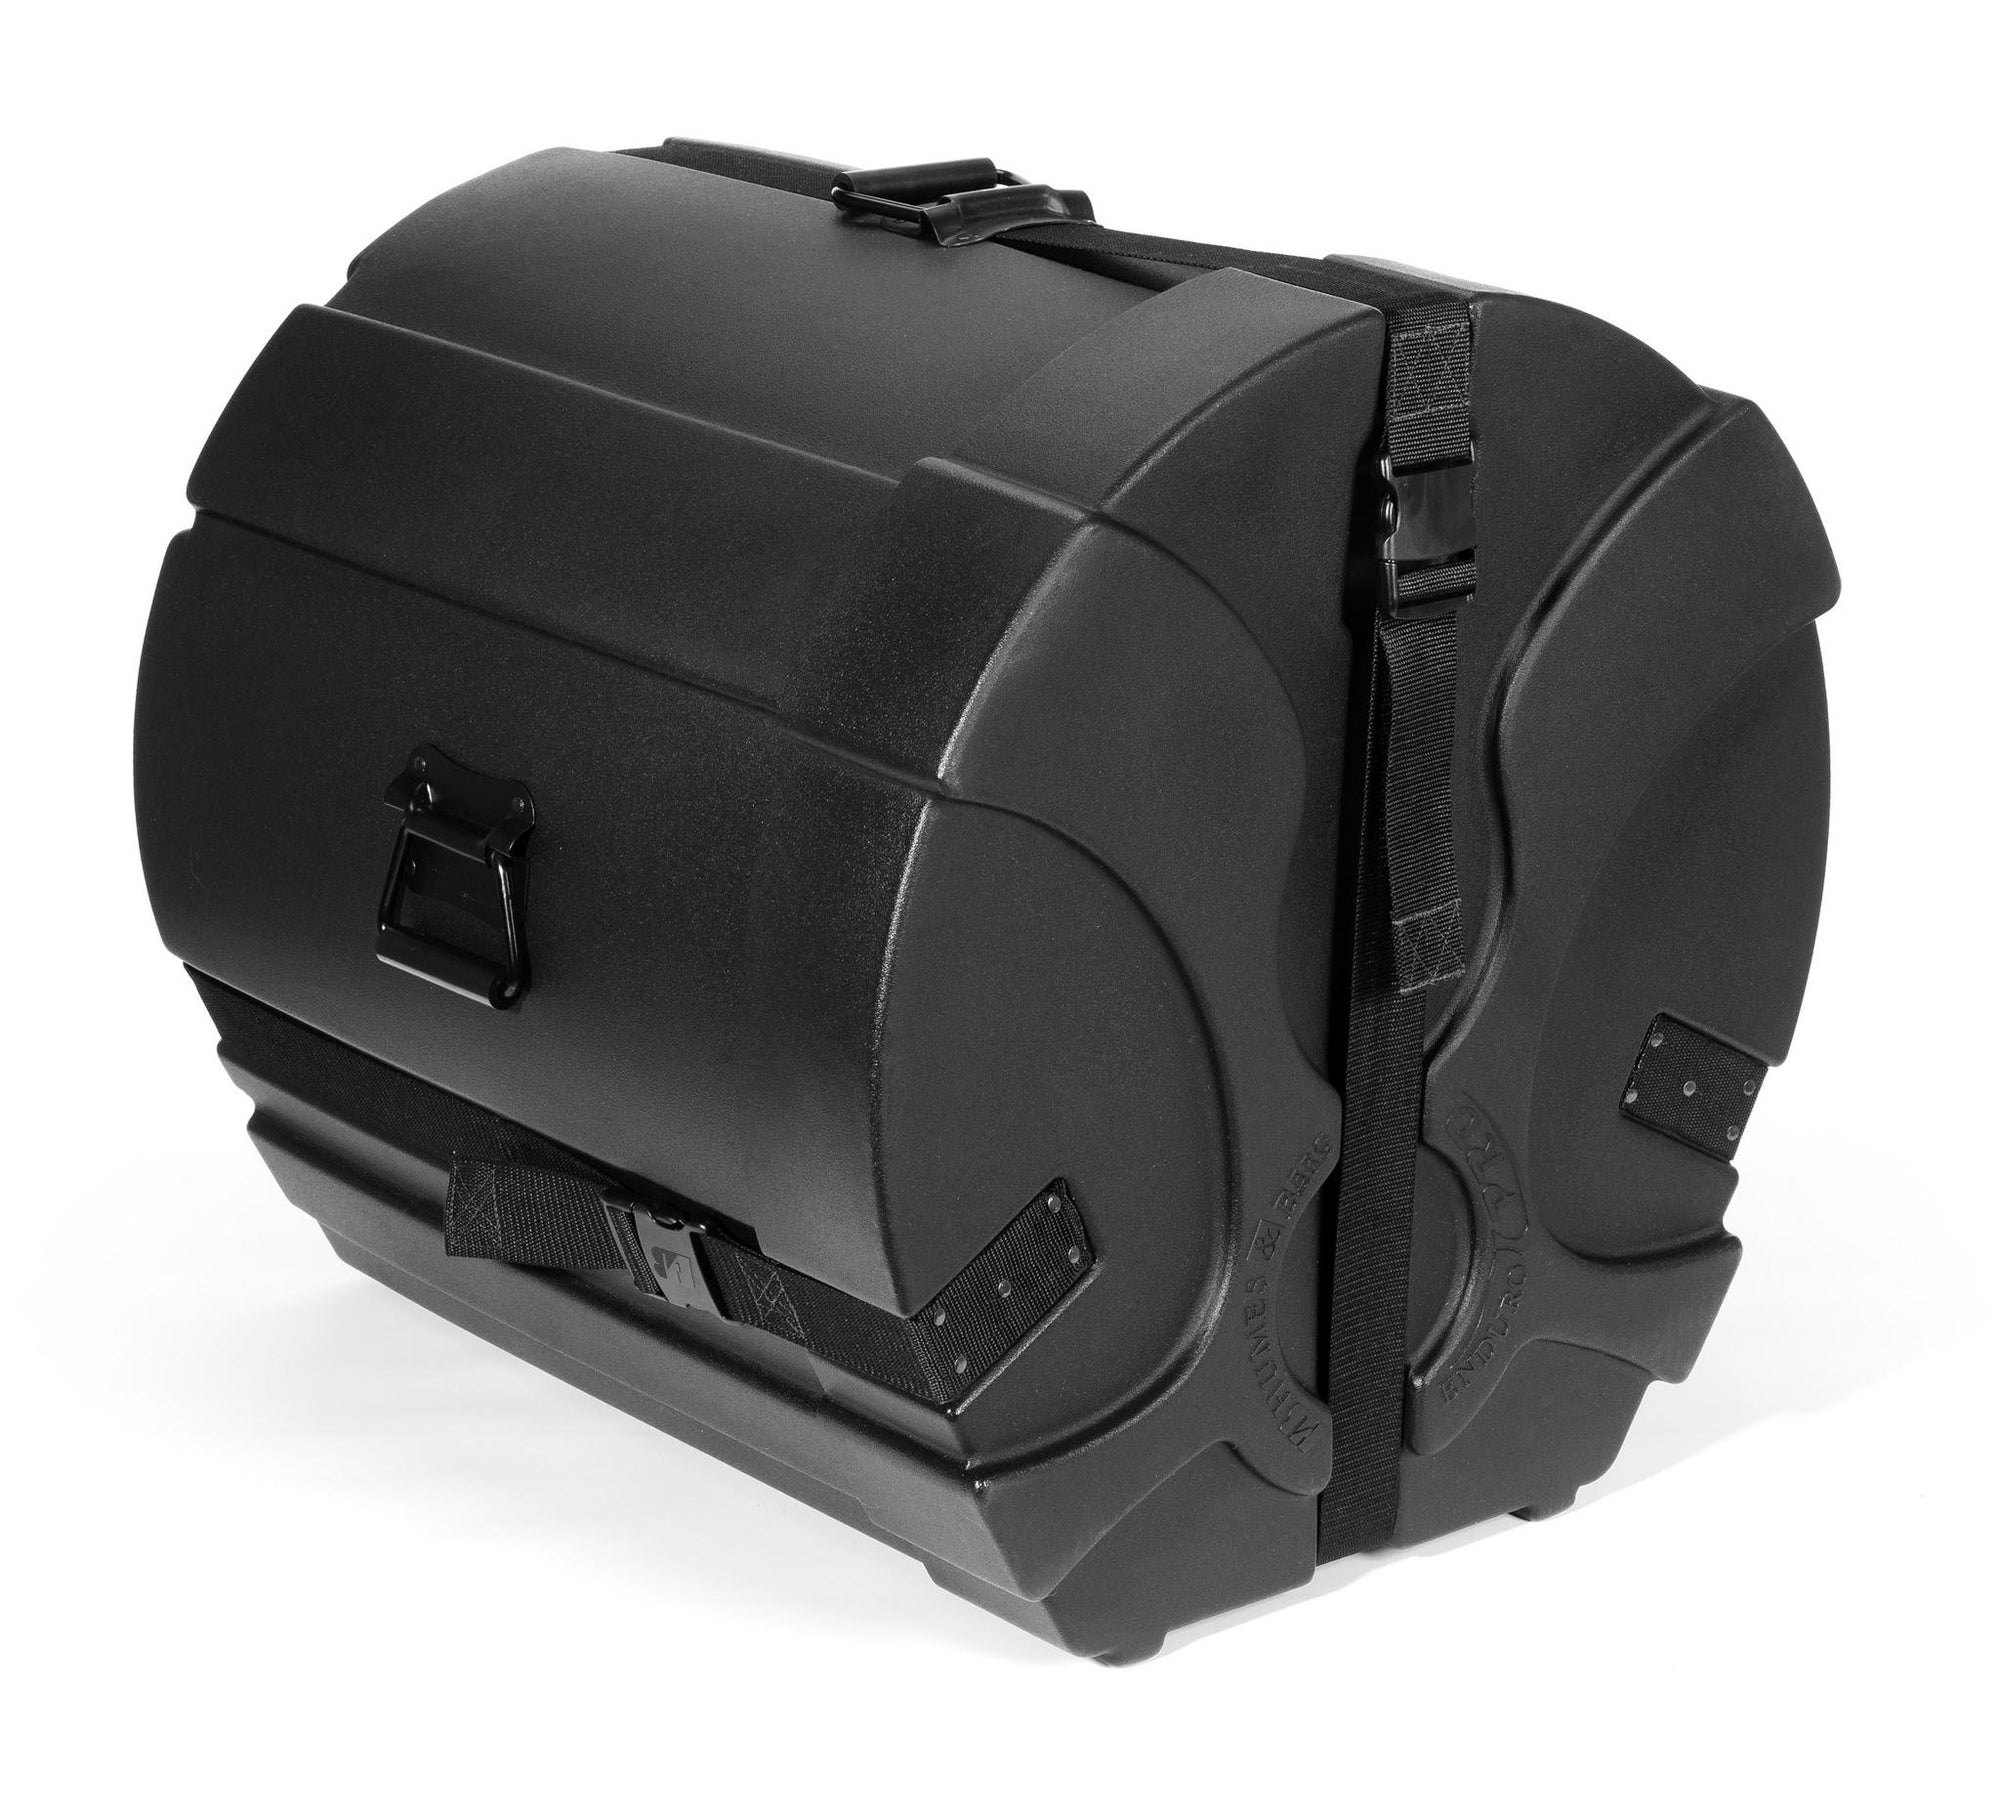 H&B  Enduro Pro 20 x 24 Inches Bass Drum Case